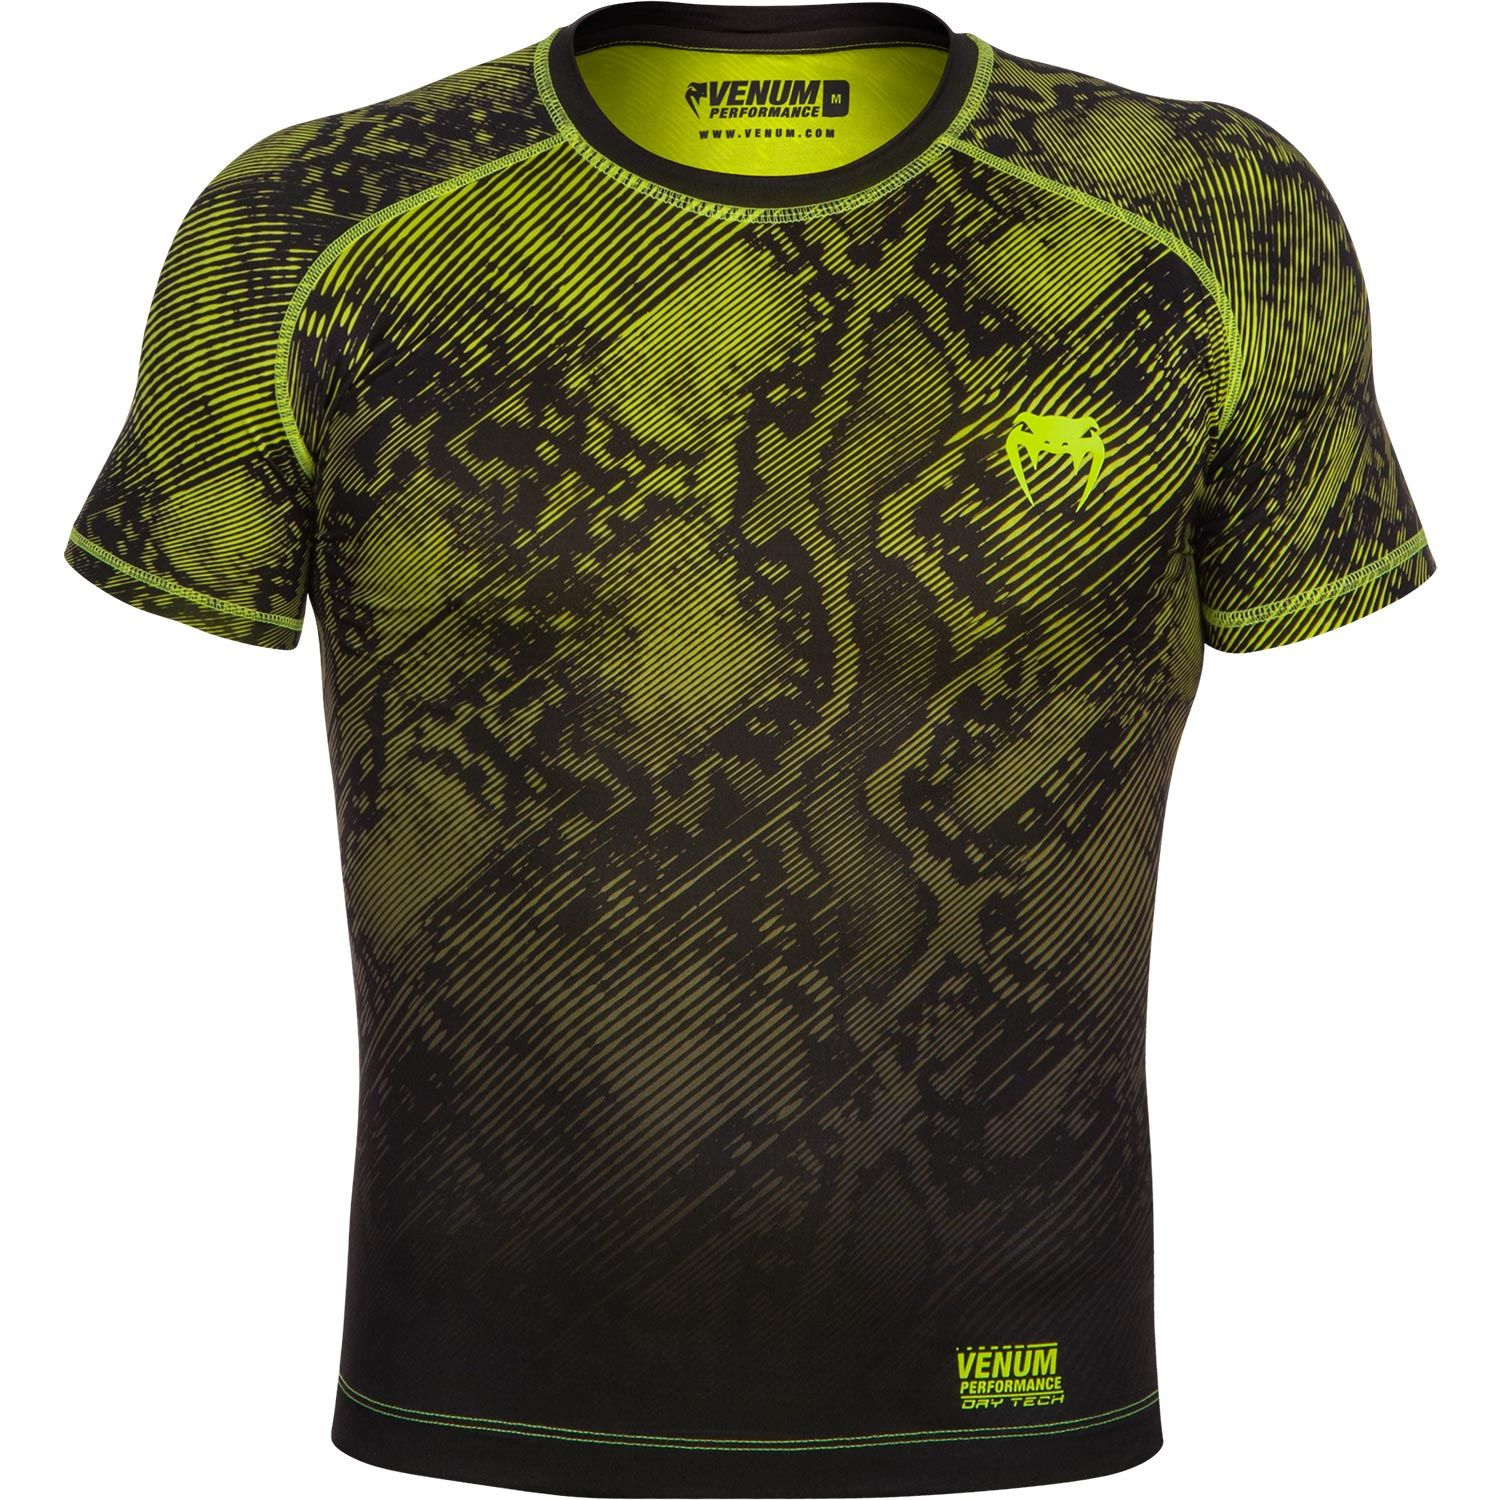 Venum Fusion Compression T-shirt - Short Sleeves - Black/Yellow